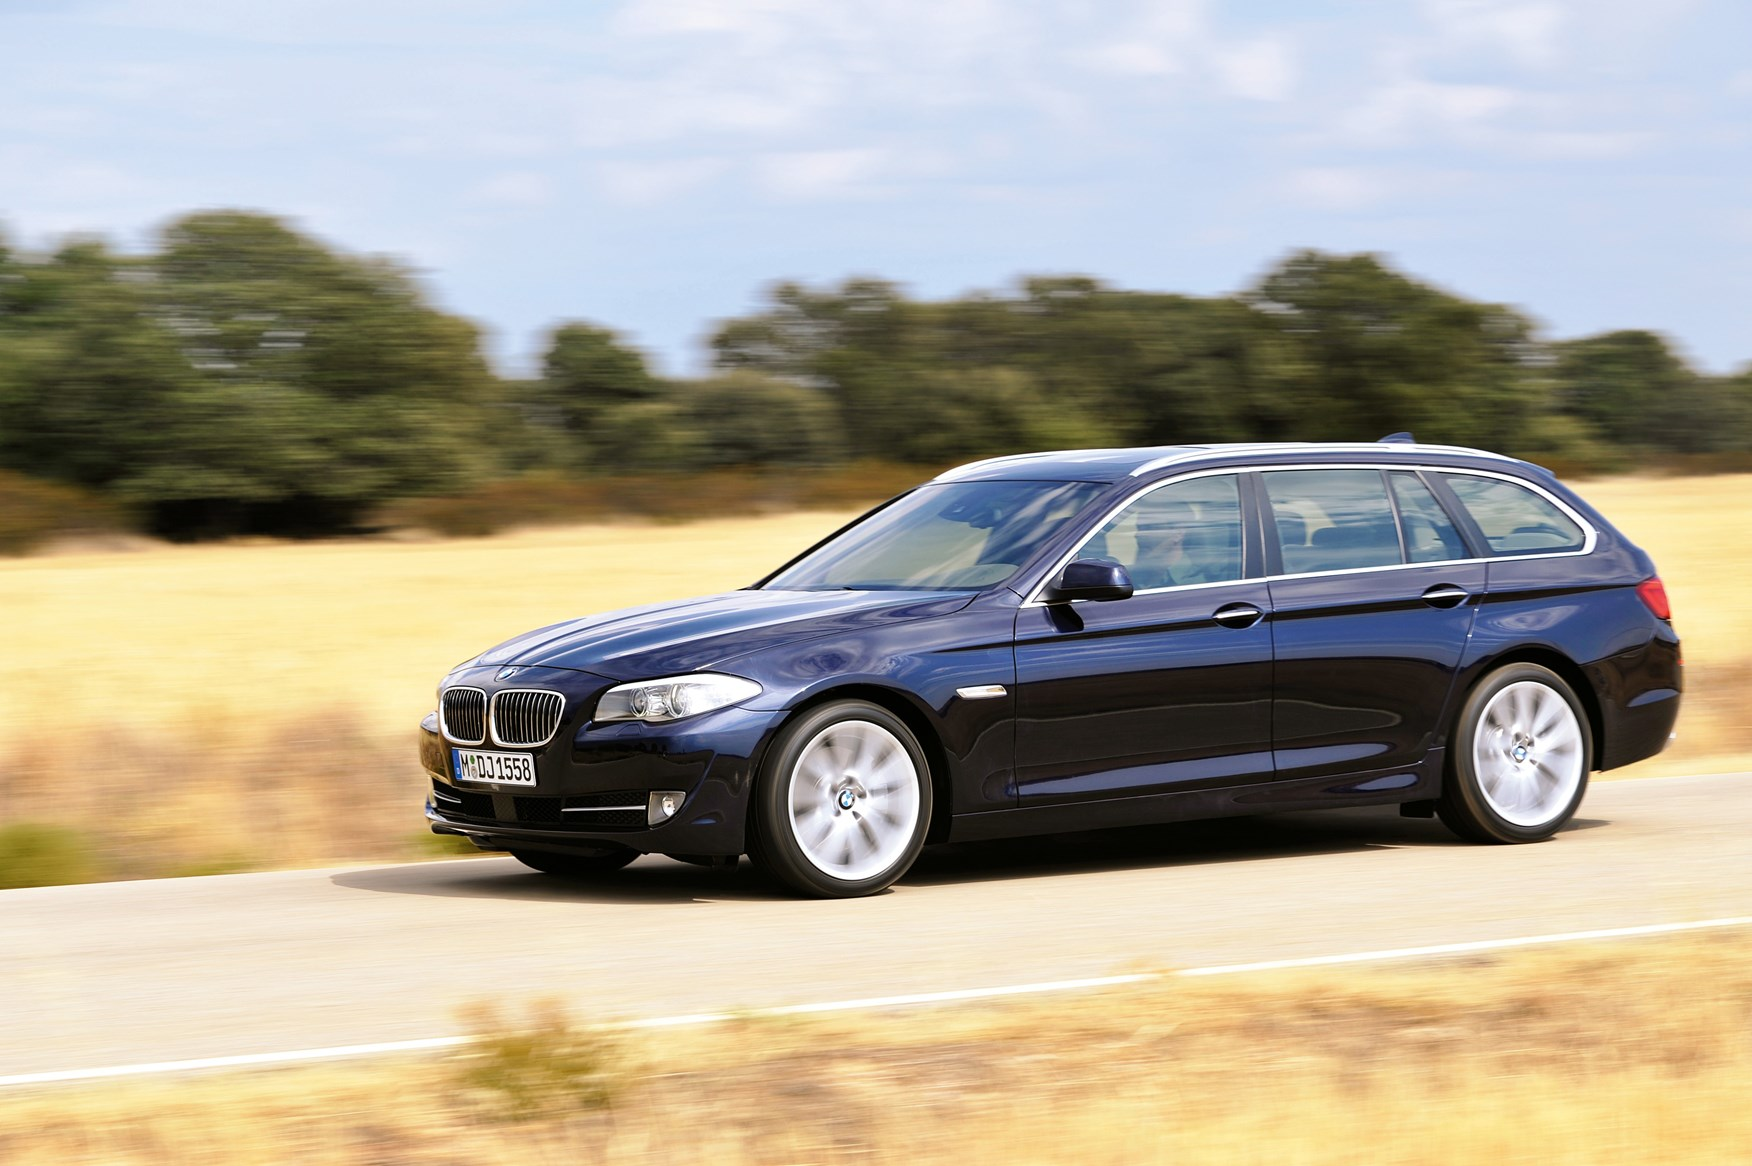 Pics photos bmw 520d estate bmw 520d touring review 2010 - View All Images Of The Bmw 5 Series Touring 10 17